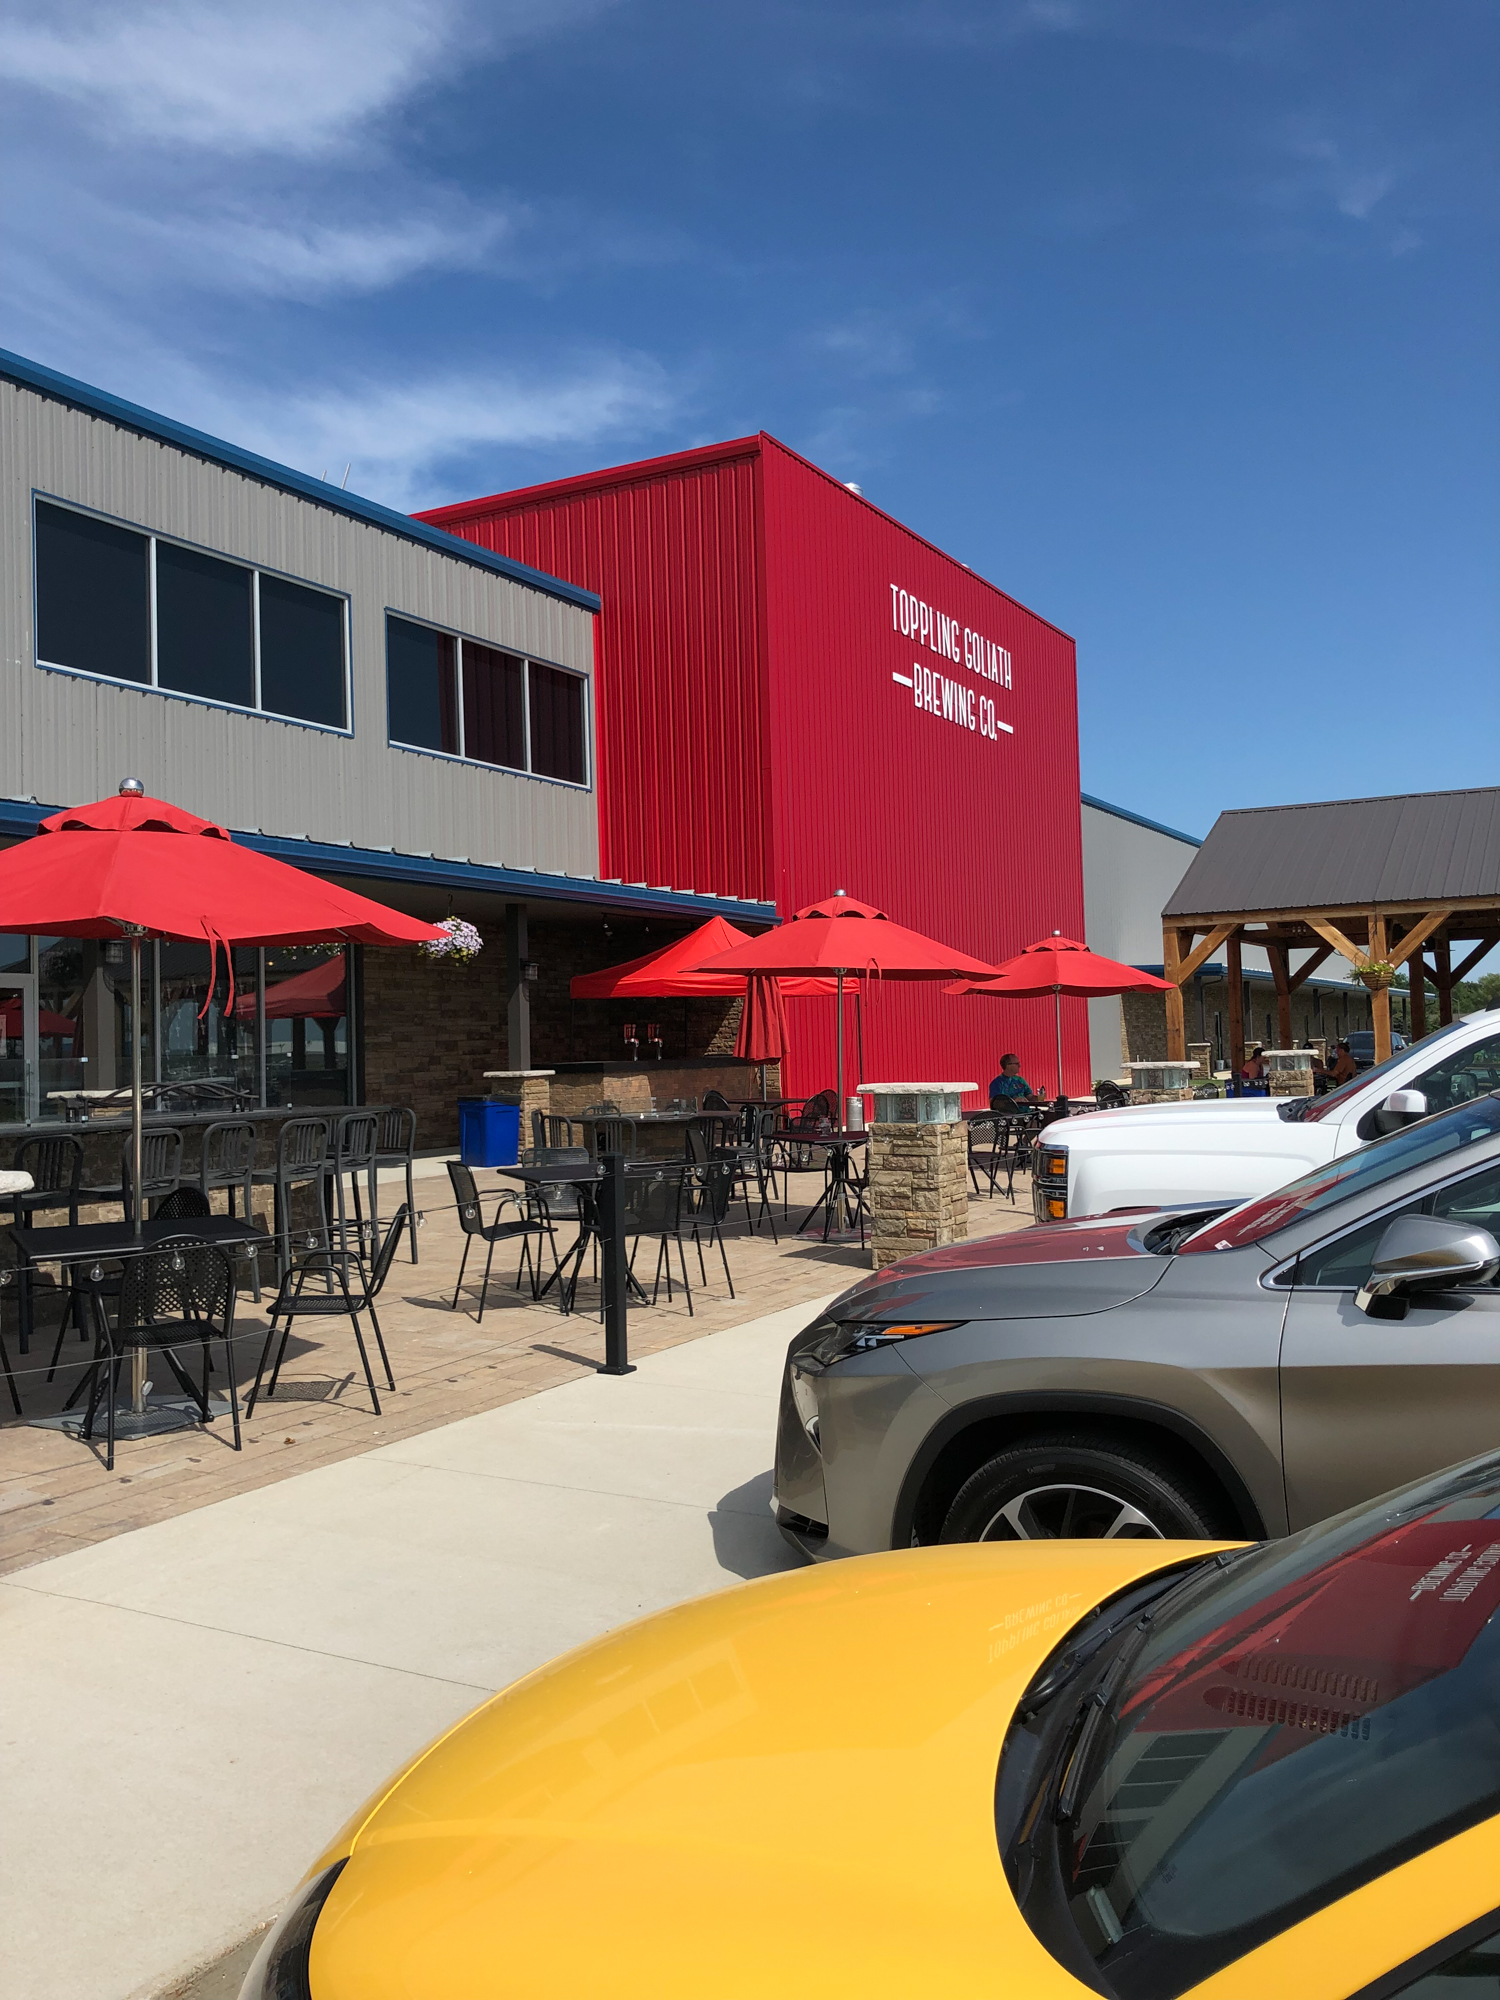 Toppling Goliath Brewery in Decorah Iowa Now Has a Beautiful Facility with a Nice, Family Friendly Restaurant